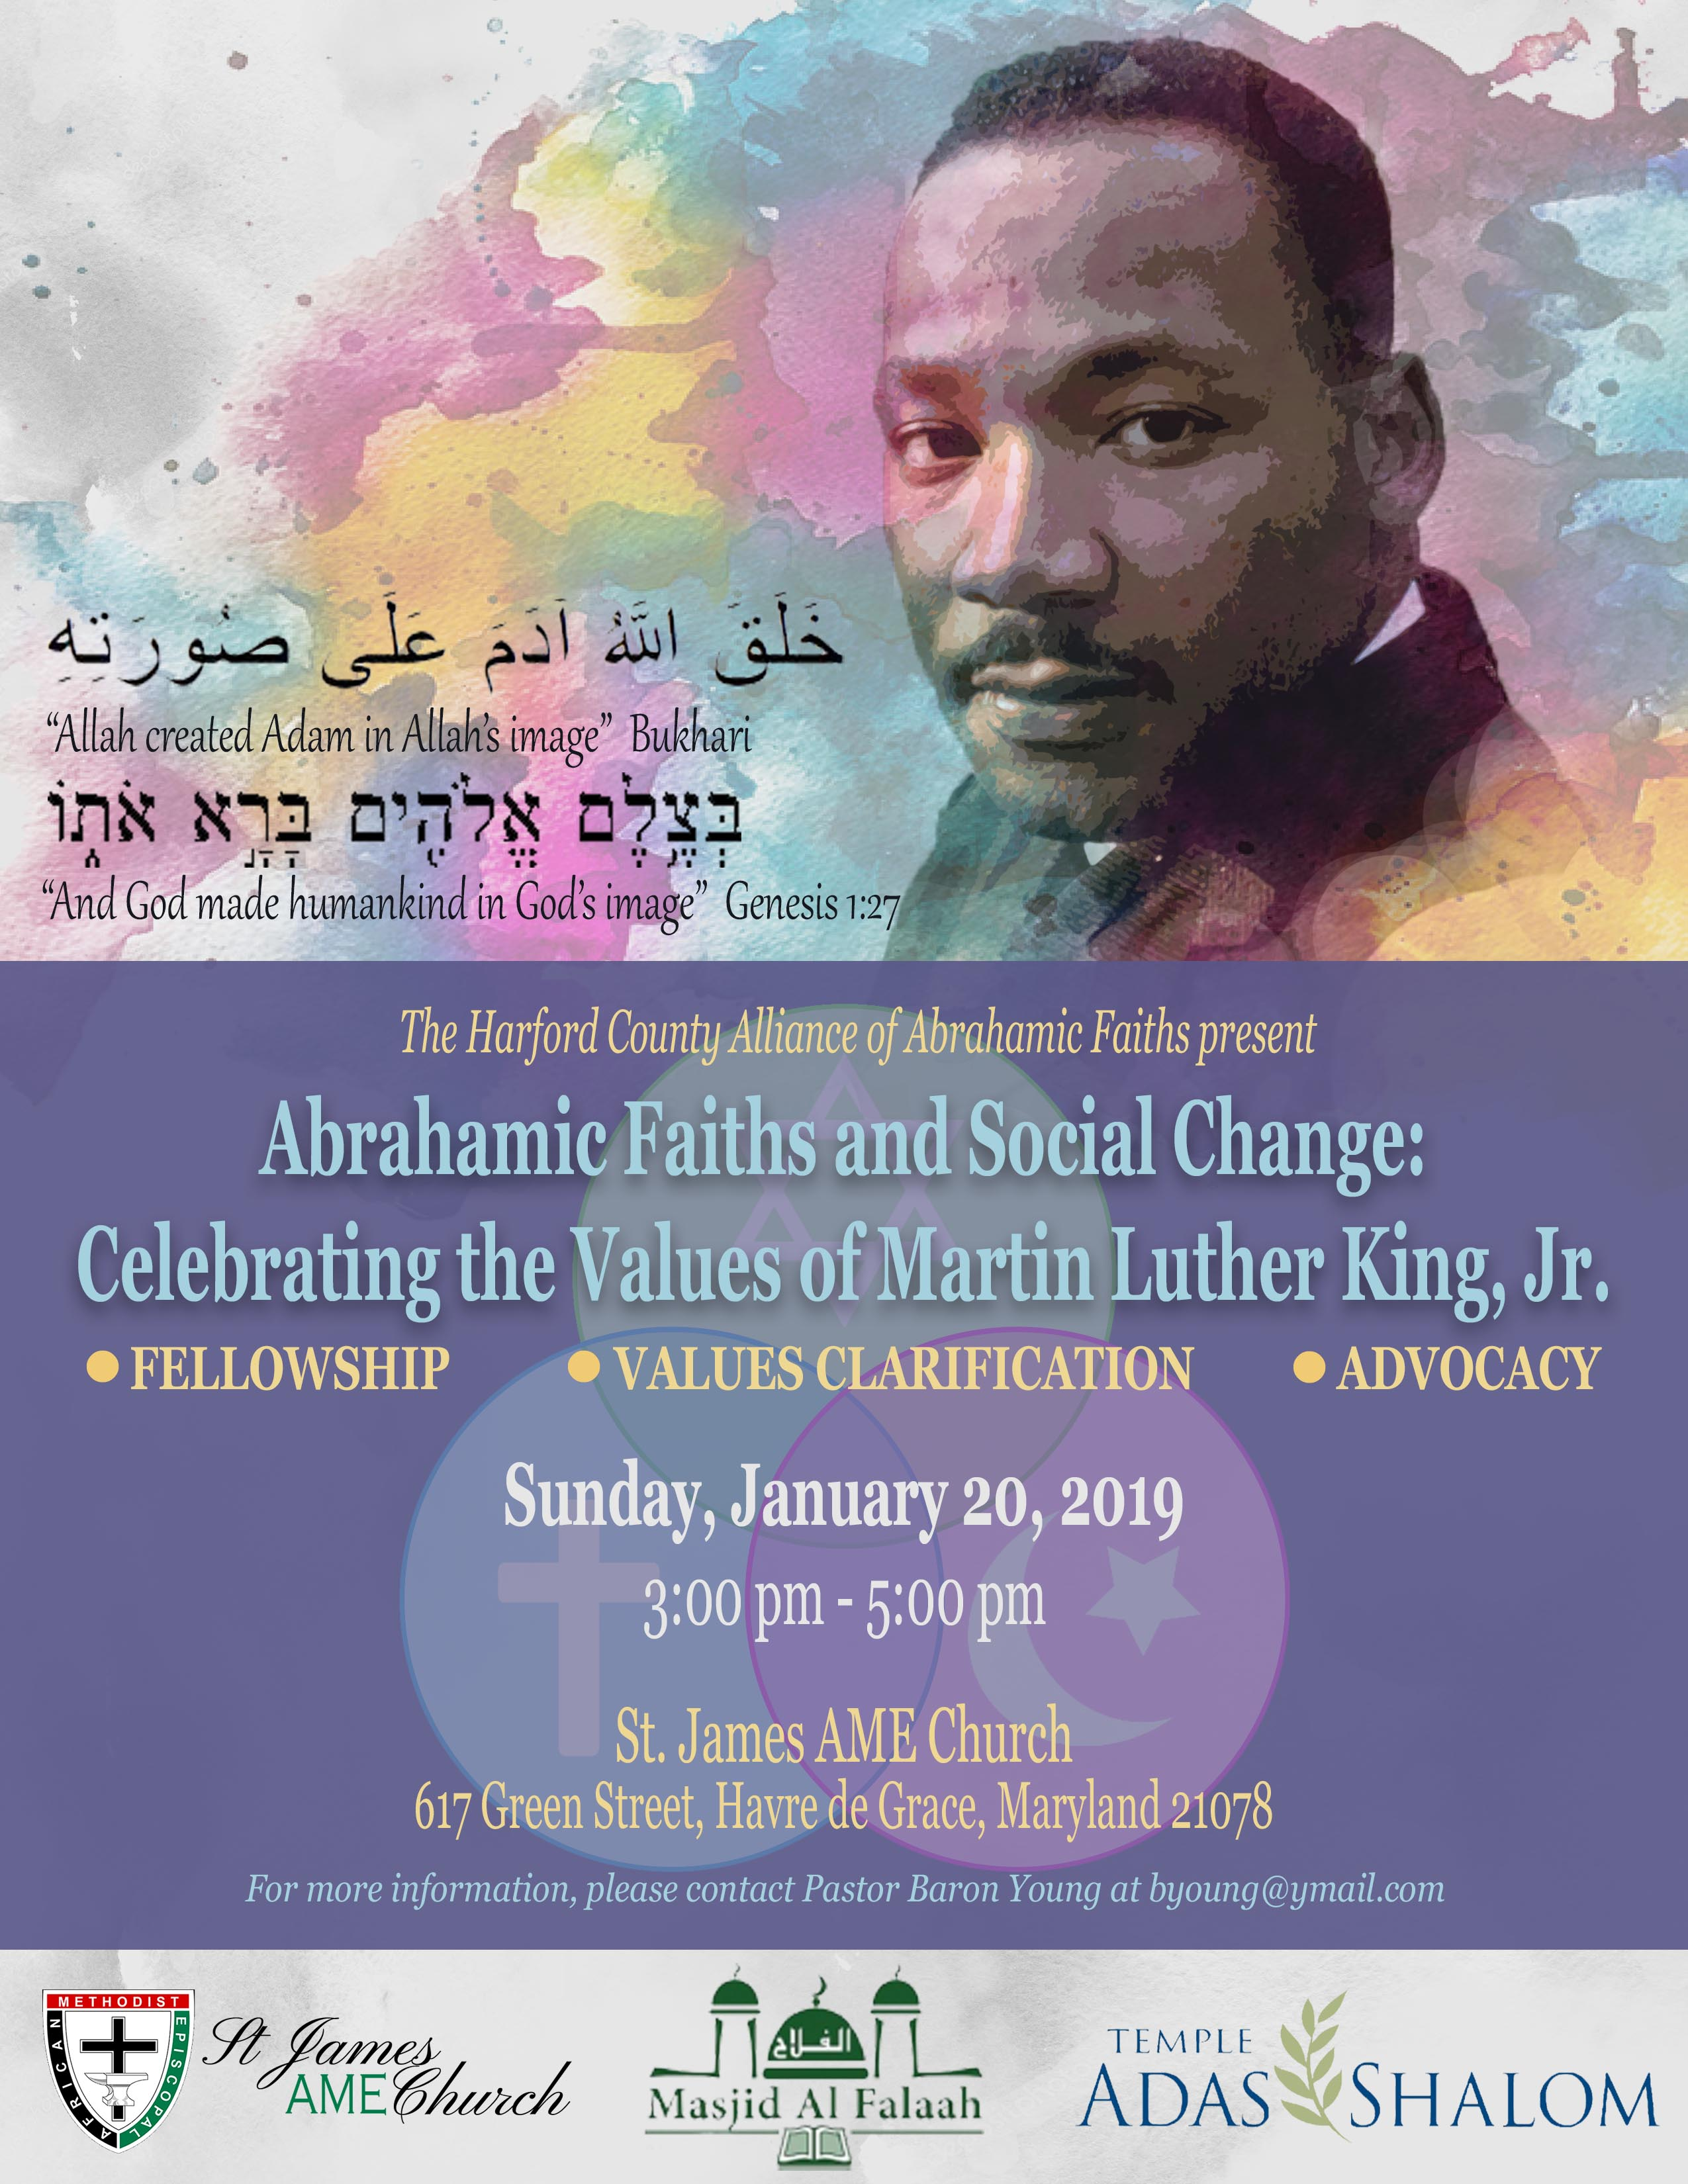 Martin Luther King Event - 1/20